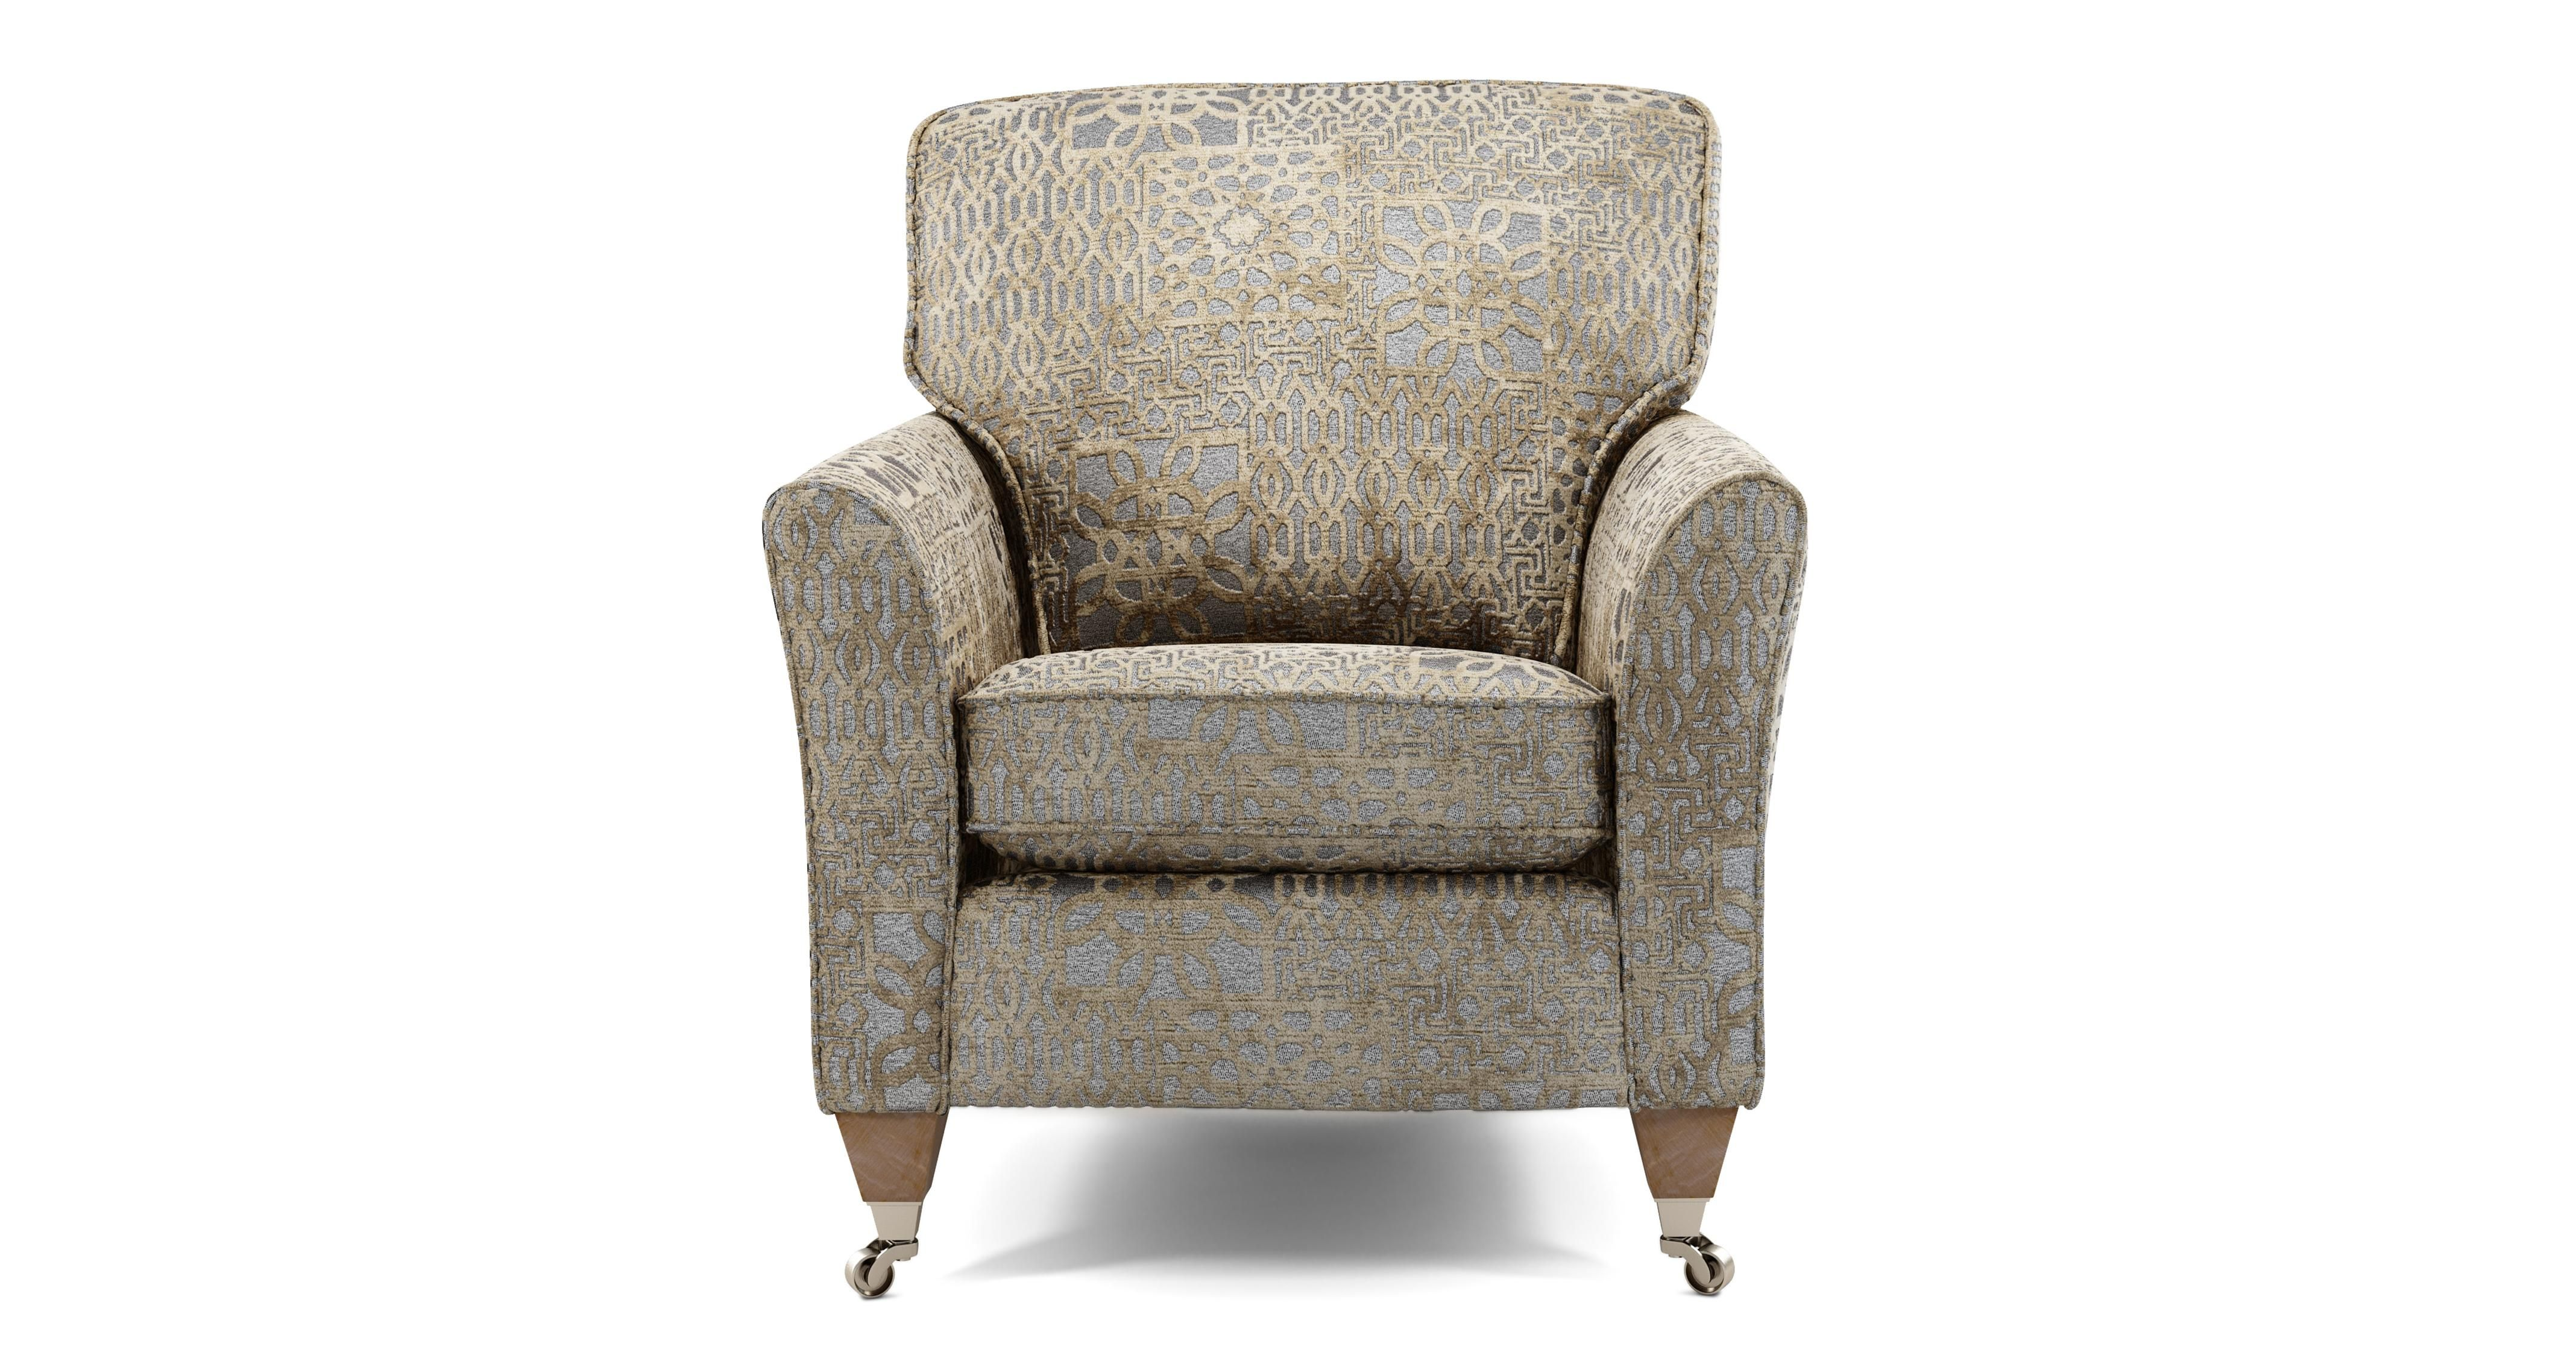 Dfs Accent Chair Piazza In 2020 Accent Chairs Chair Upholstery